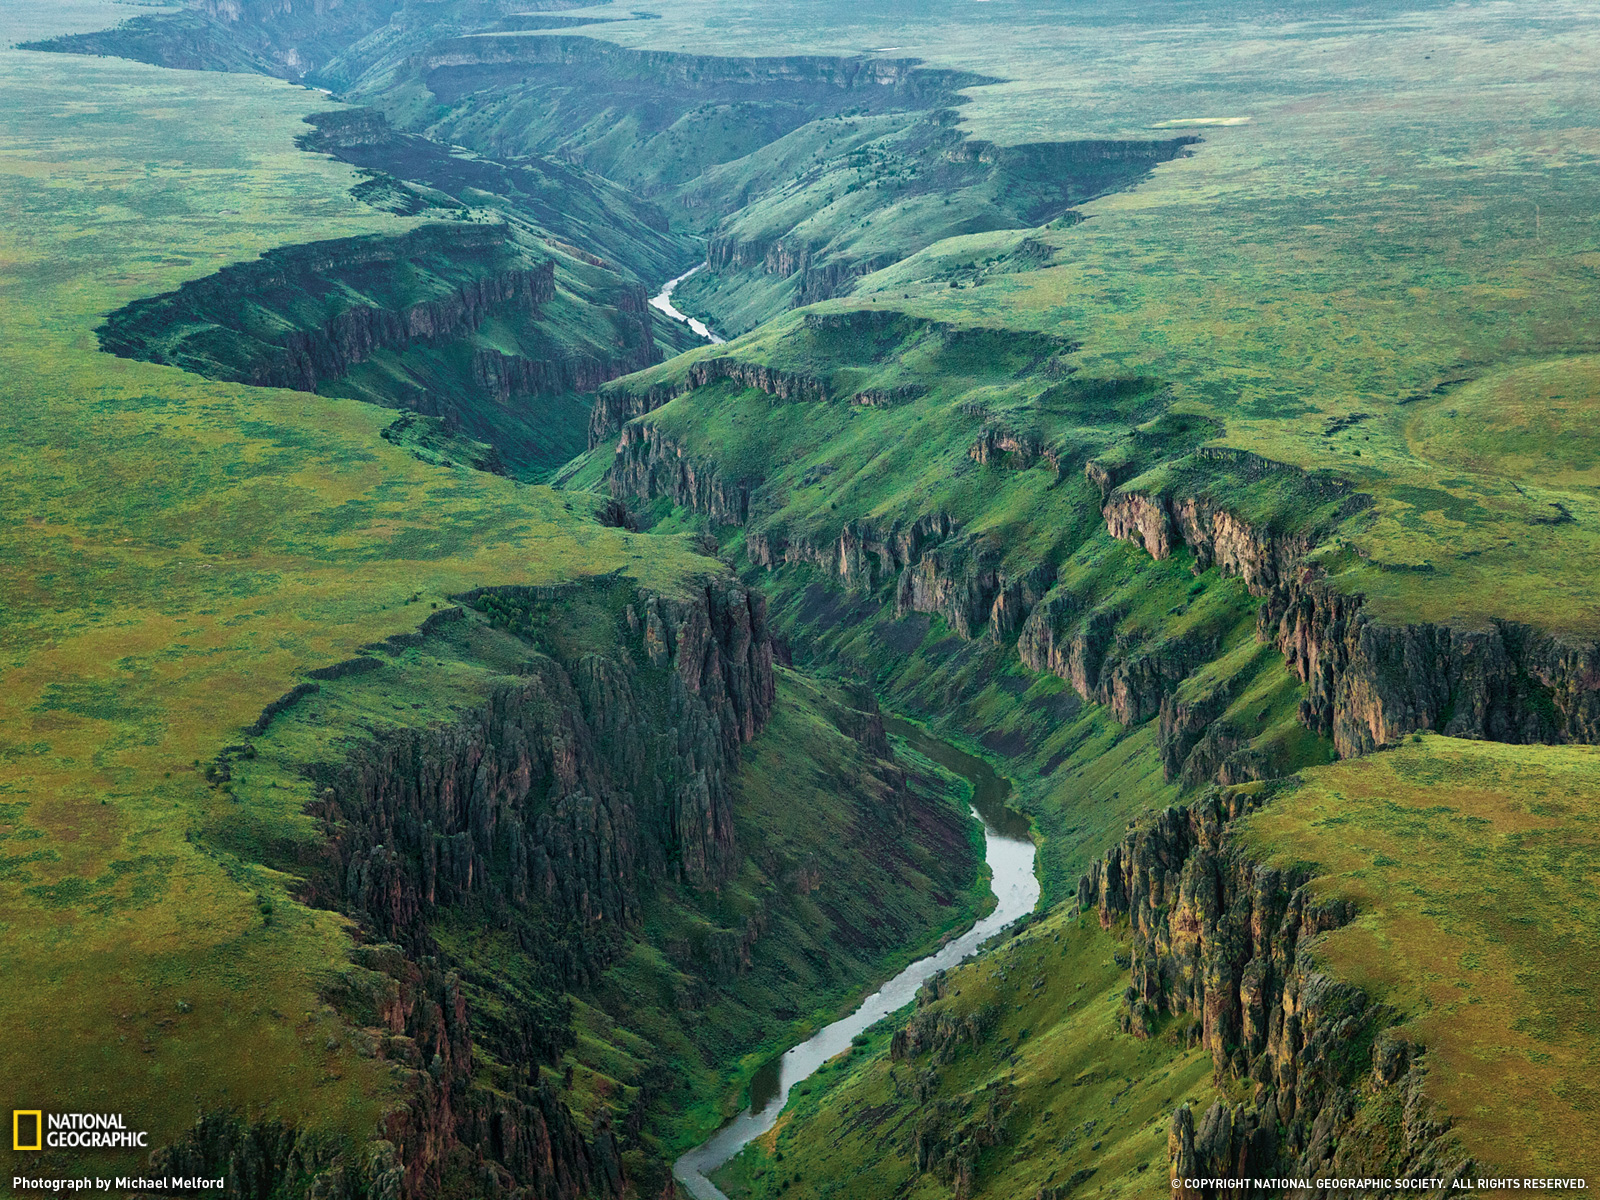 Owyhee River Picture Landscape Wallpaper   National Geographic 1600x1200